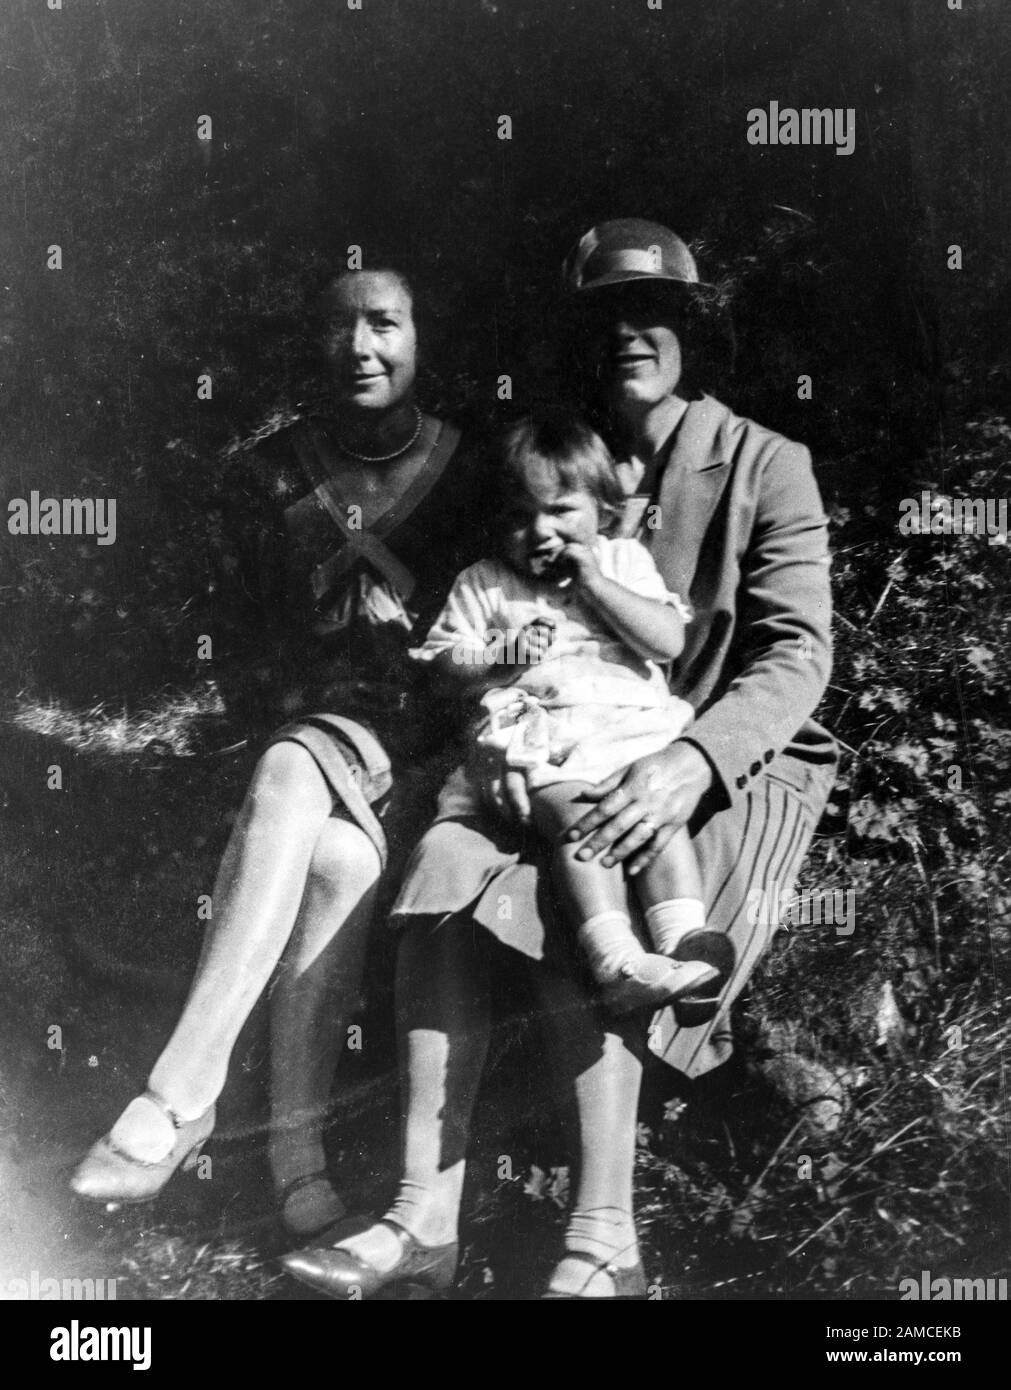 Archive image of two ladies with a toddler, circa 1920s, scanned directly from the negative Stock Photo